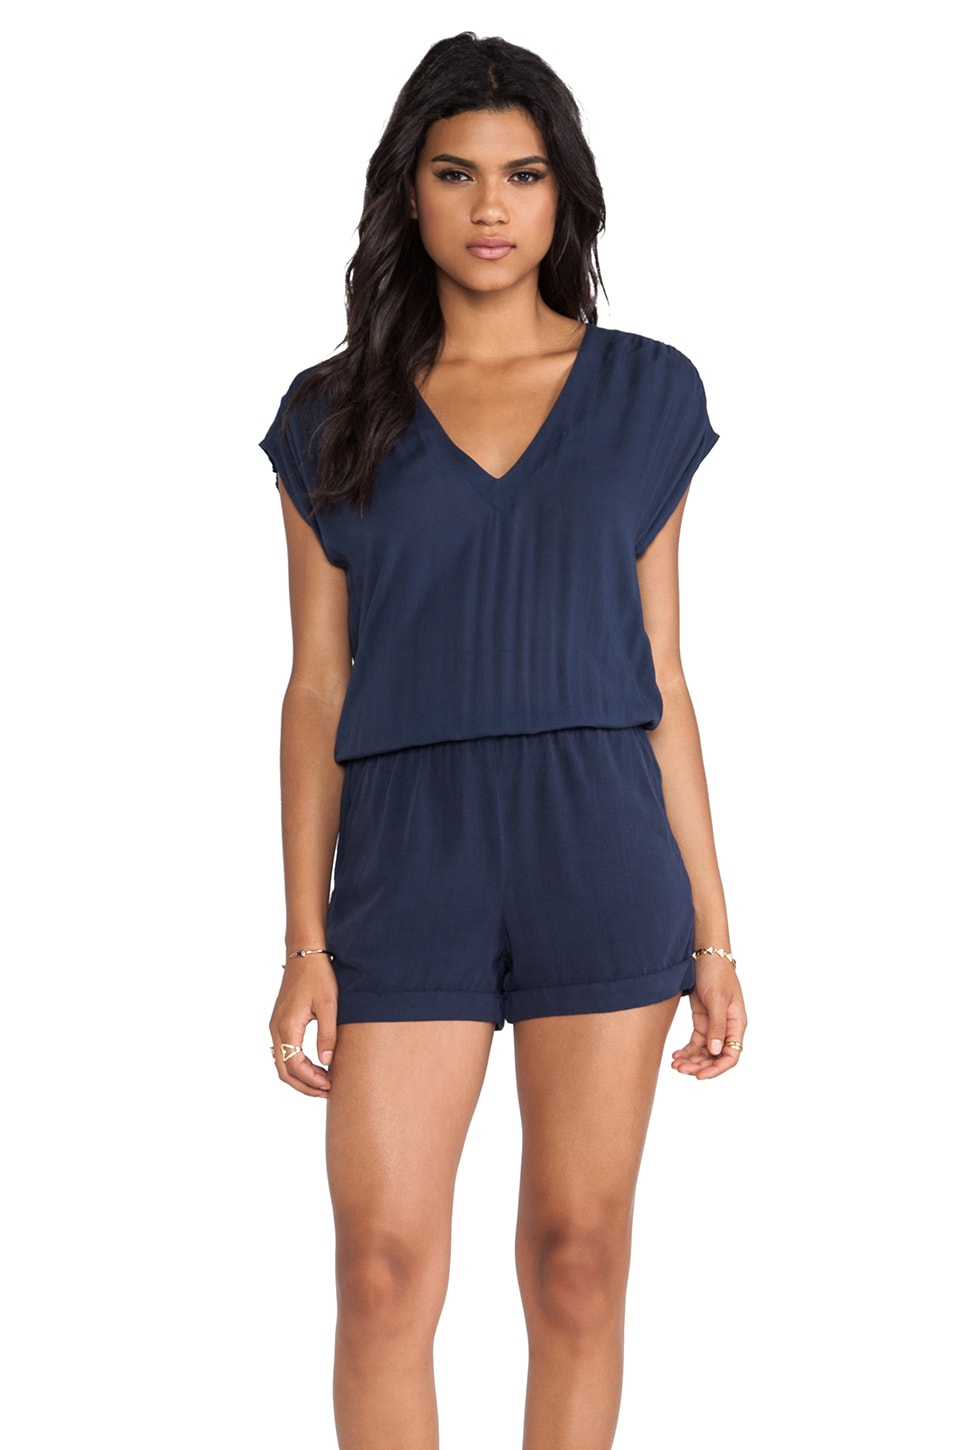 Splendid Romper in Navy